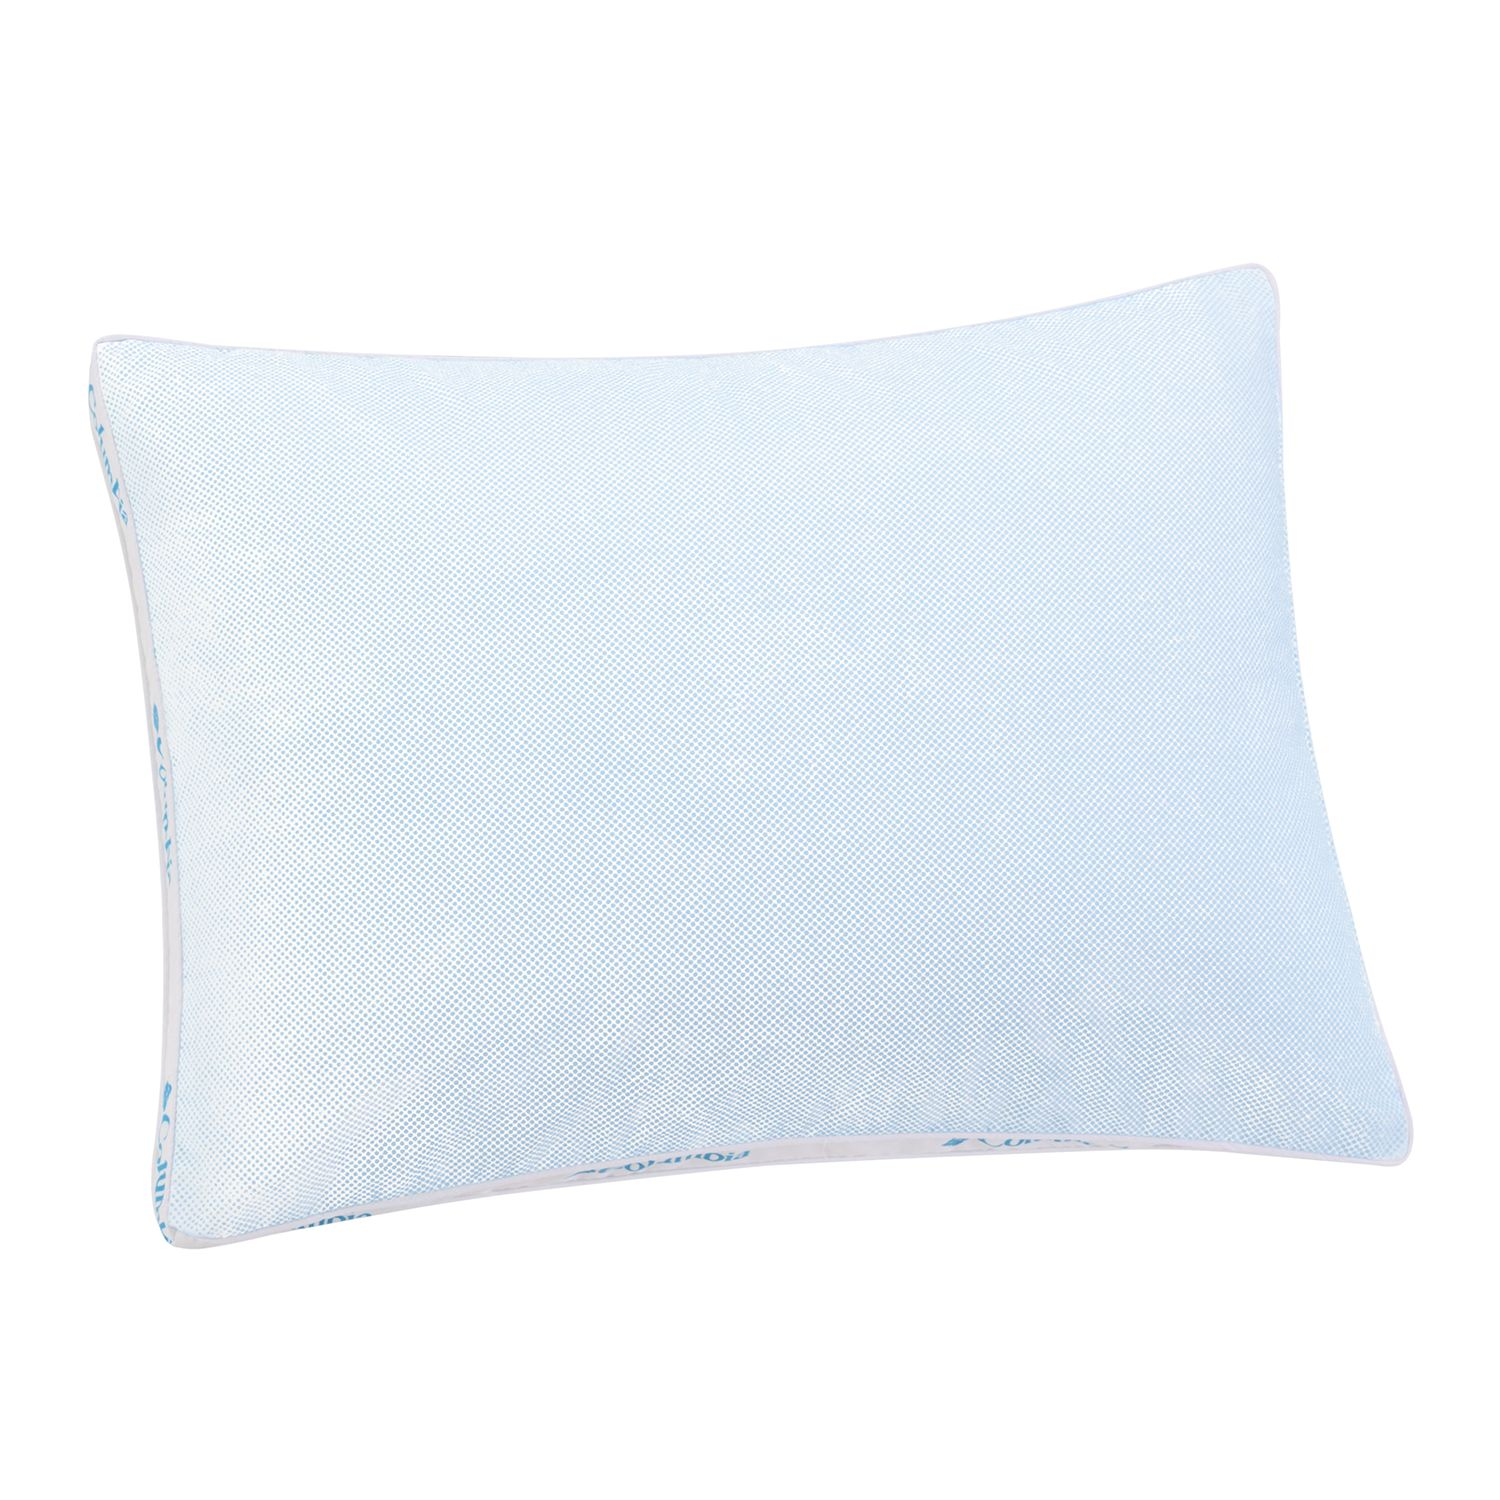 sharpen op product hei kohls cambric down white wid pillow goose cotton jsp prd pillows extra downlite firm